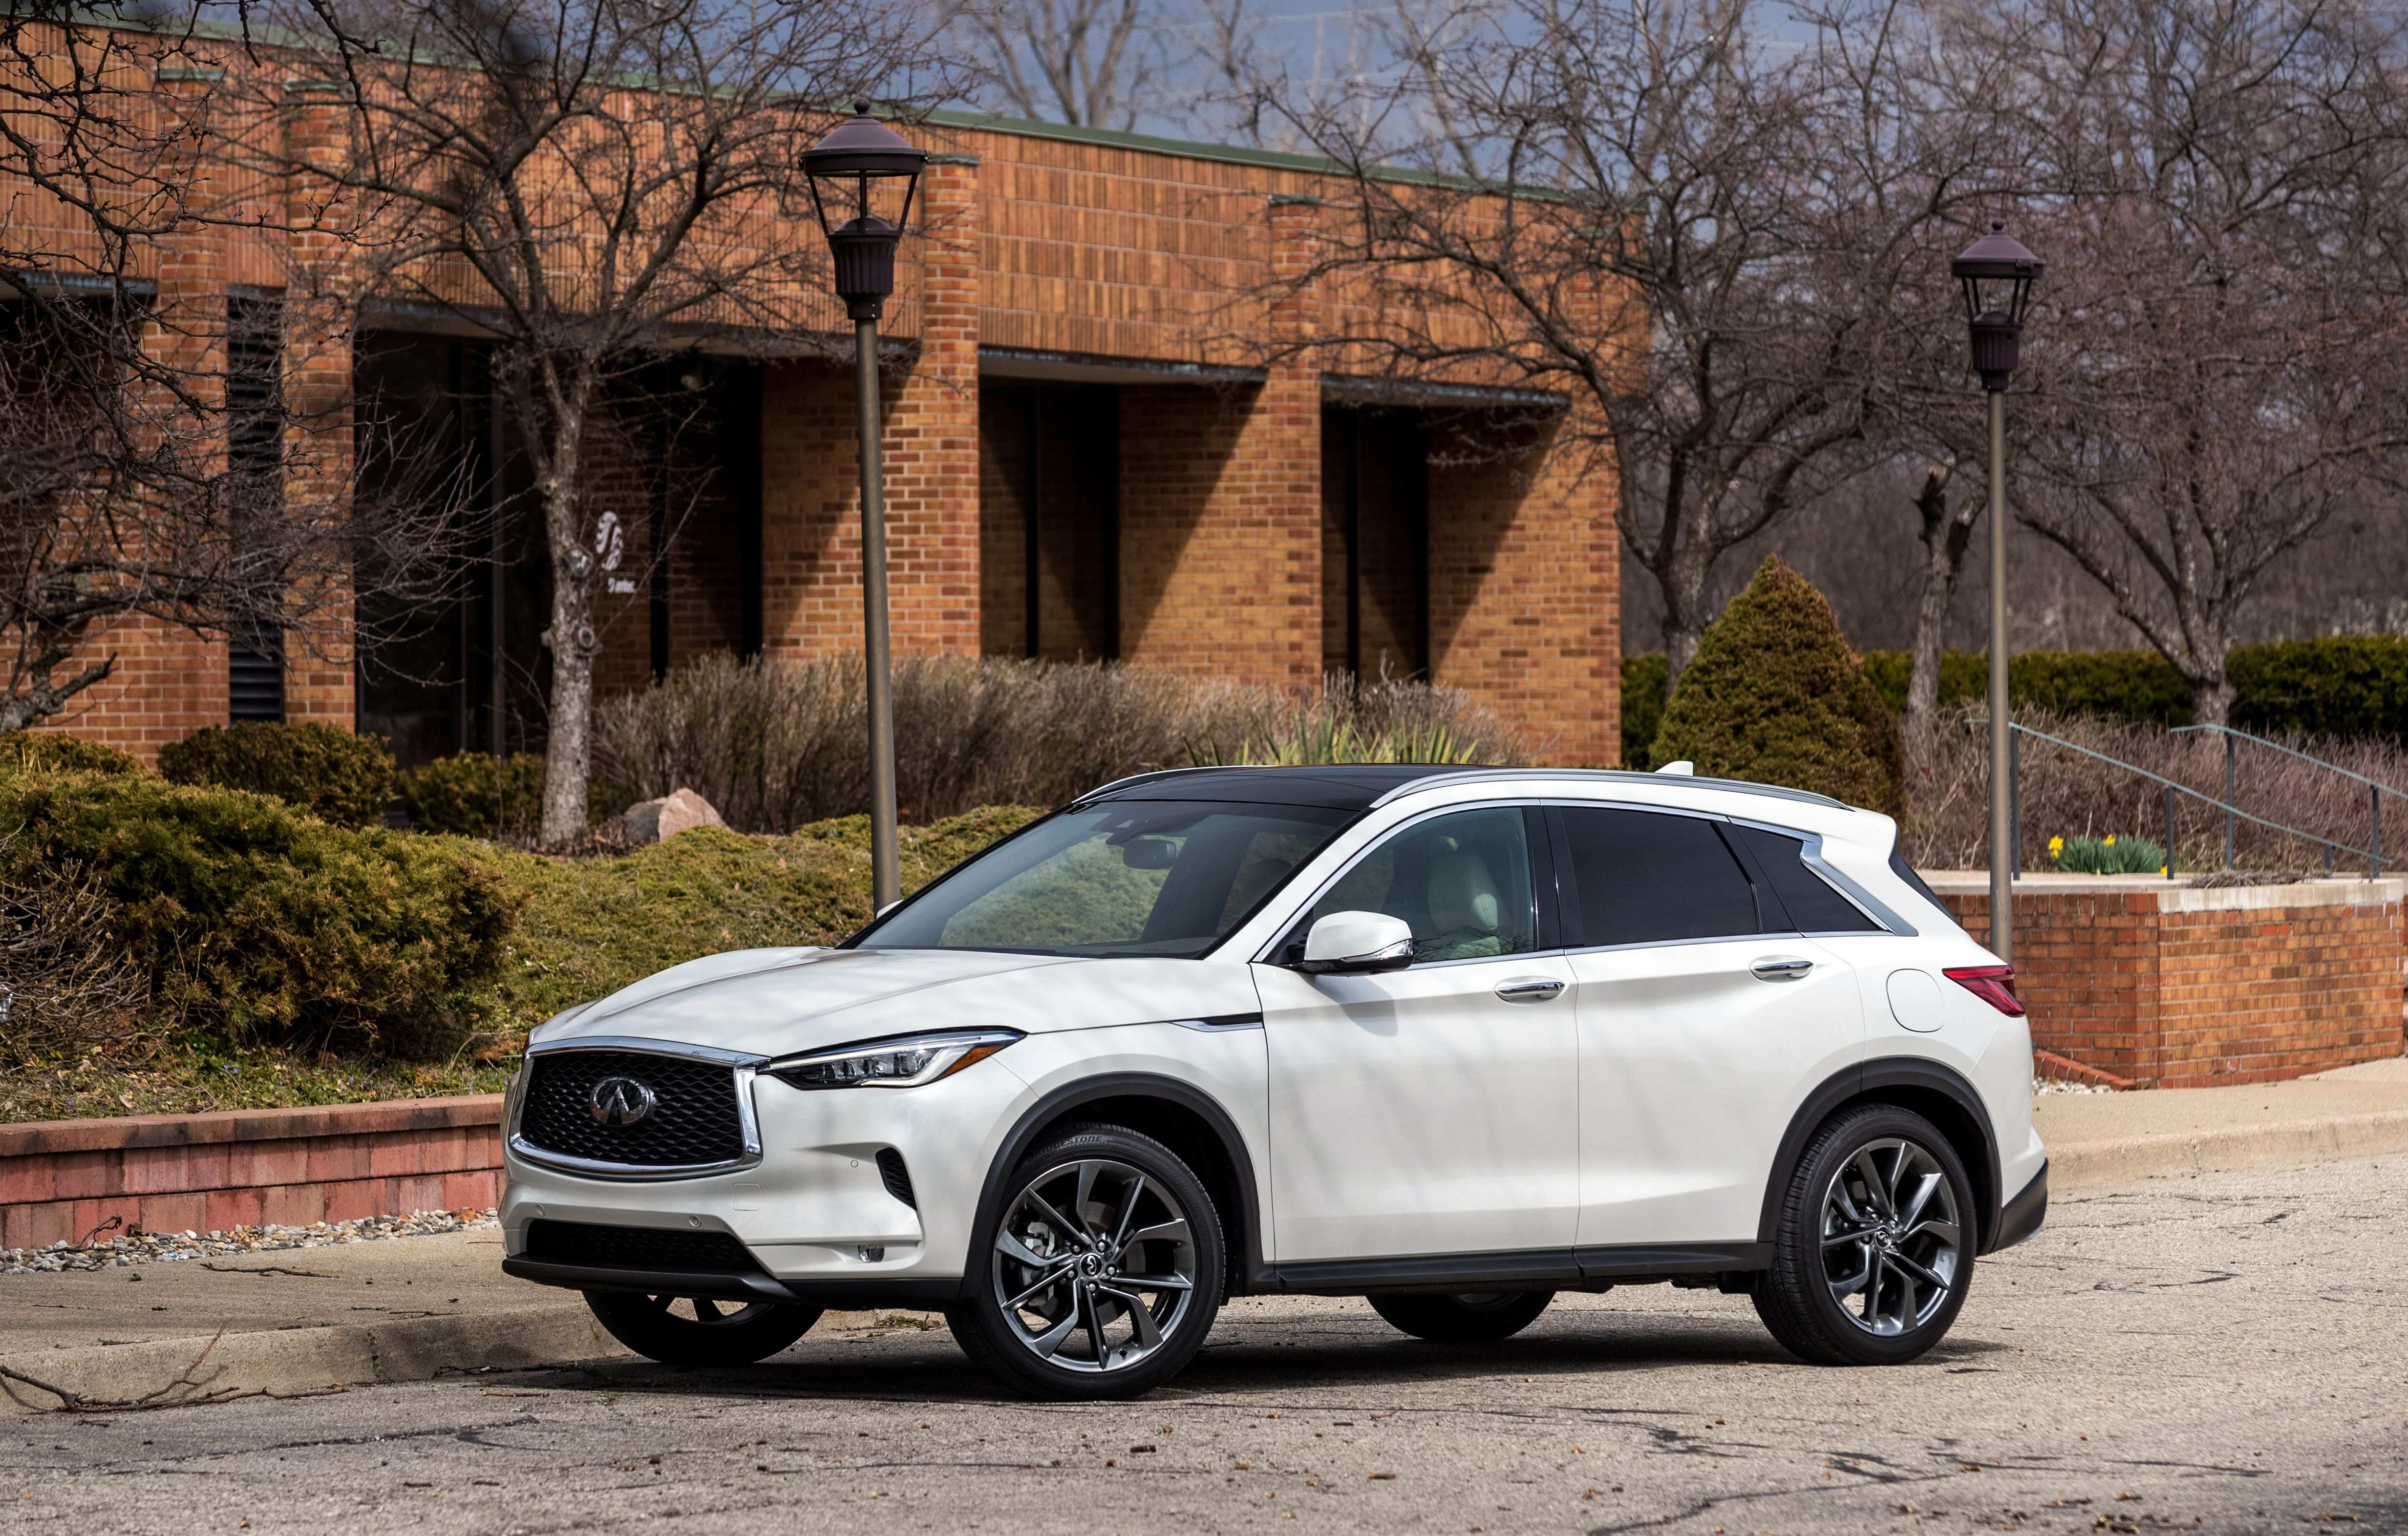 23 Concept of New 2019 Infiniti Qx50 Horsepower Review Wallpaper with New 2019 Infiniti Qx50 Horsepower Review